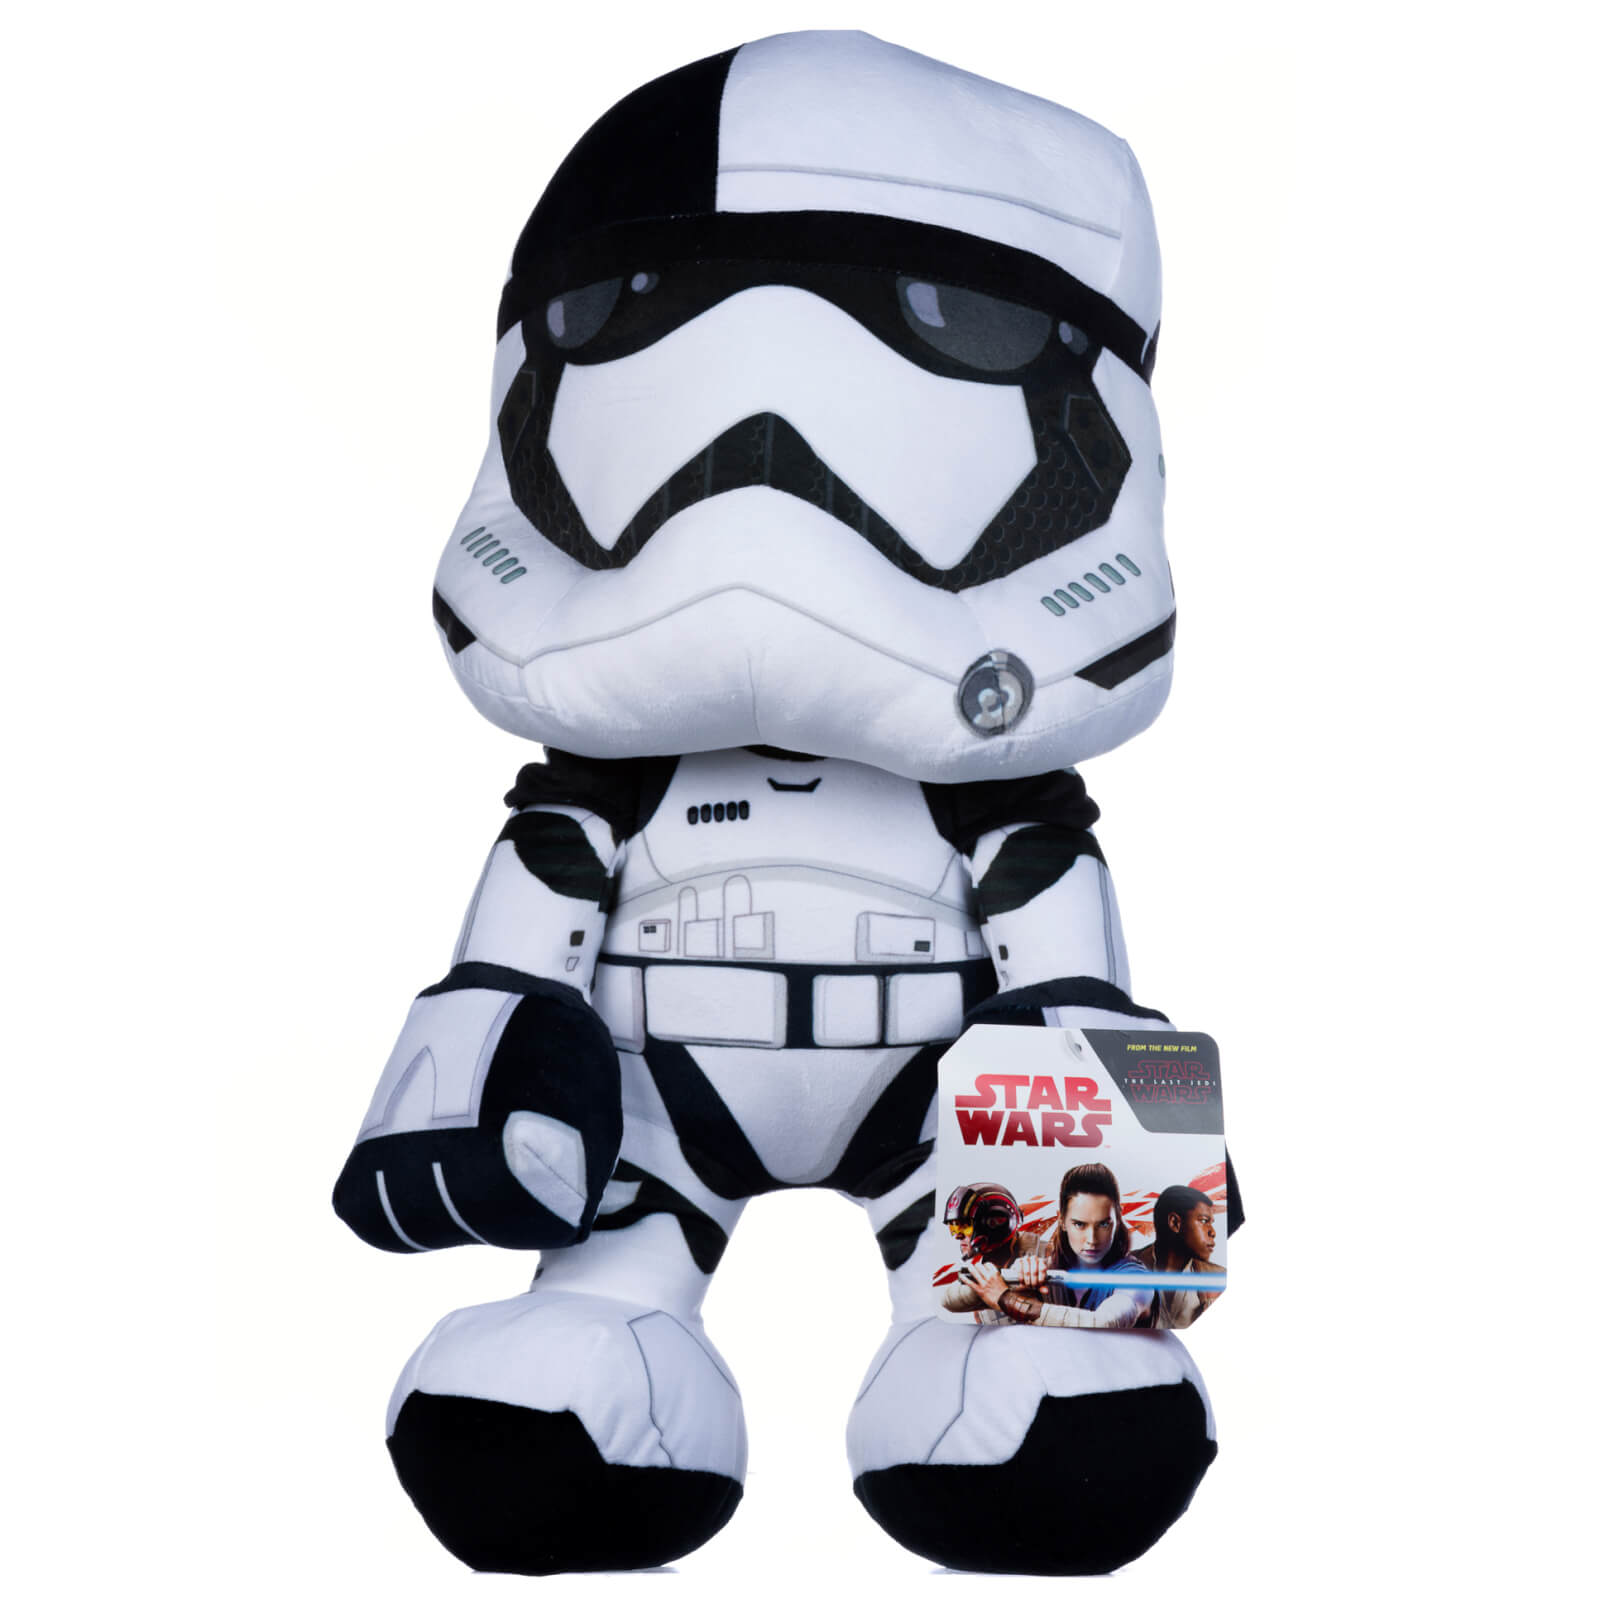 "Star Wars Episode 8 - The Last Jedi - 18"""" StormTrooper Executioner Plush"